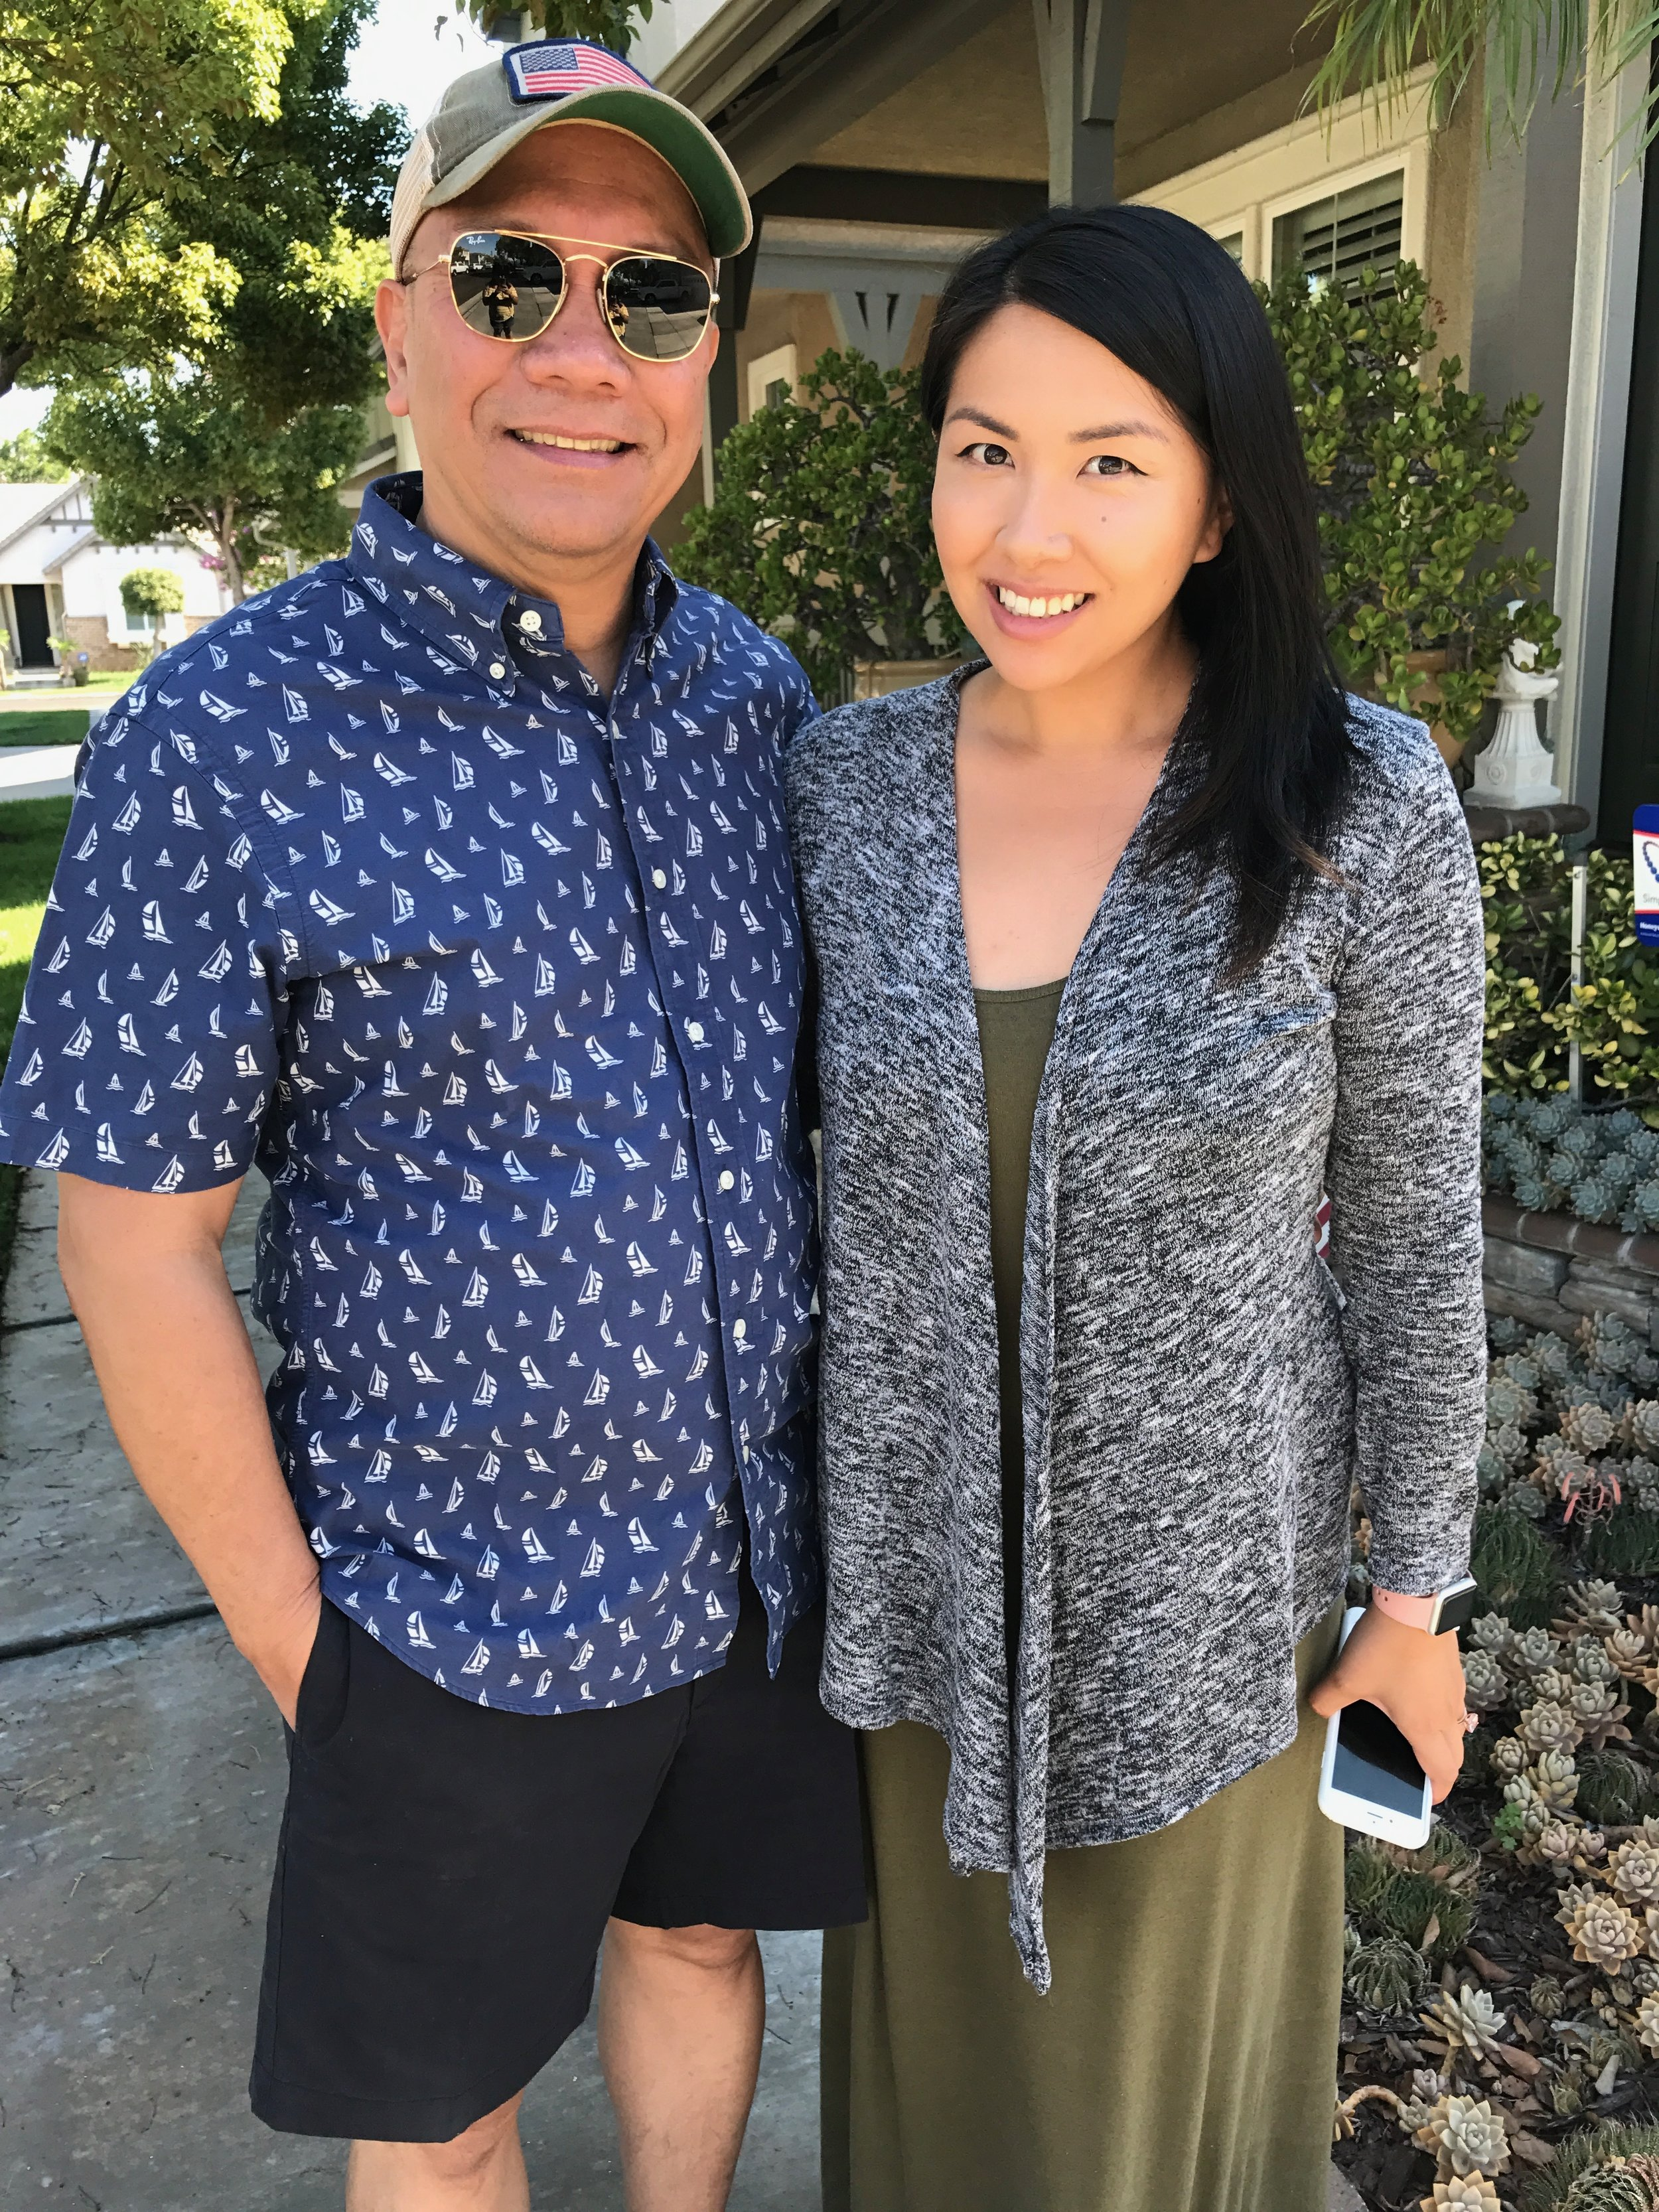 My Dad and I on Father's Day, when I was in my best health before falling off the wagon. My skin is just glowing here, no filter!